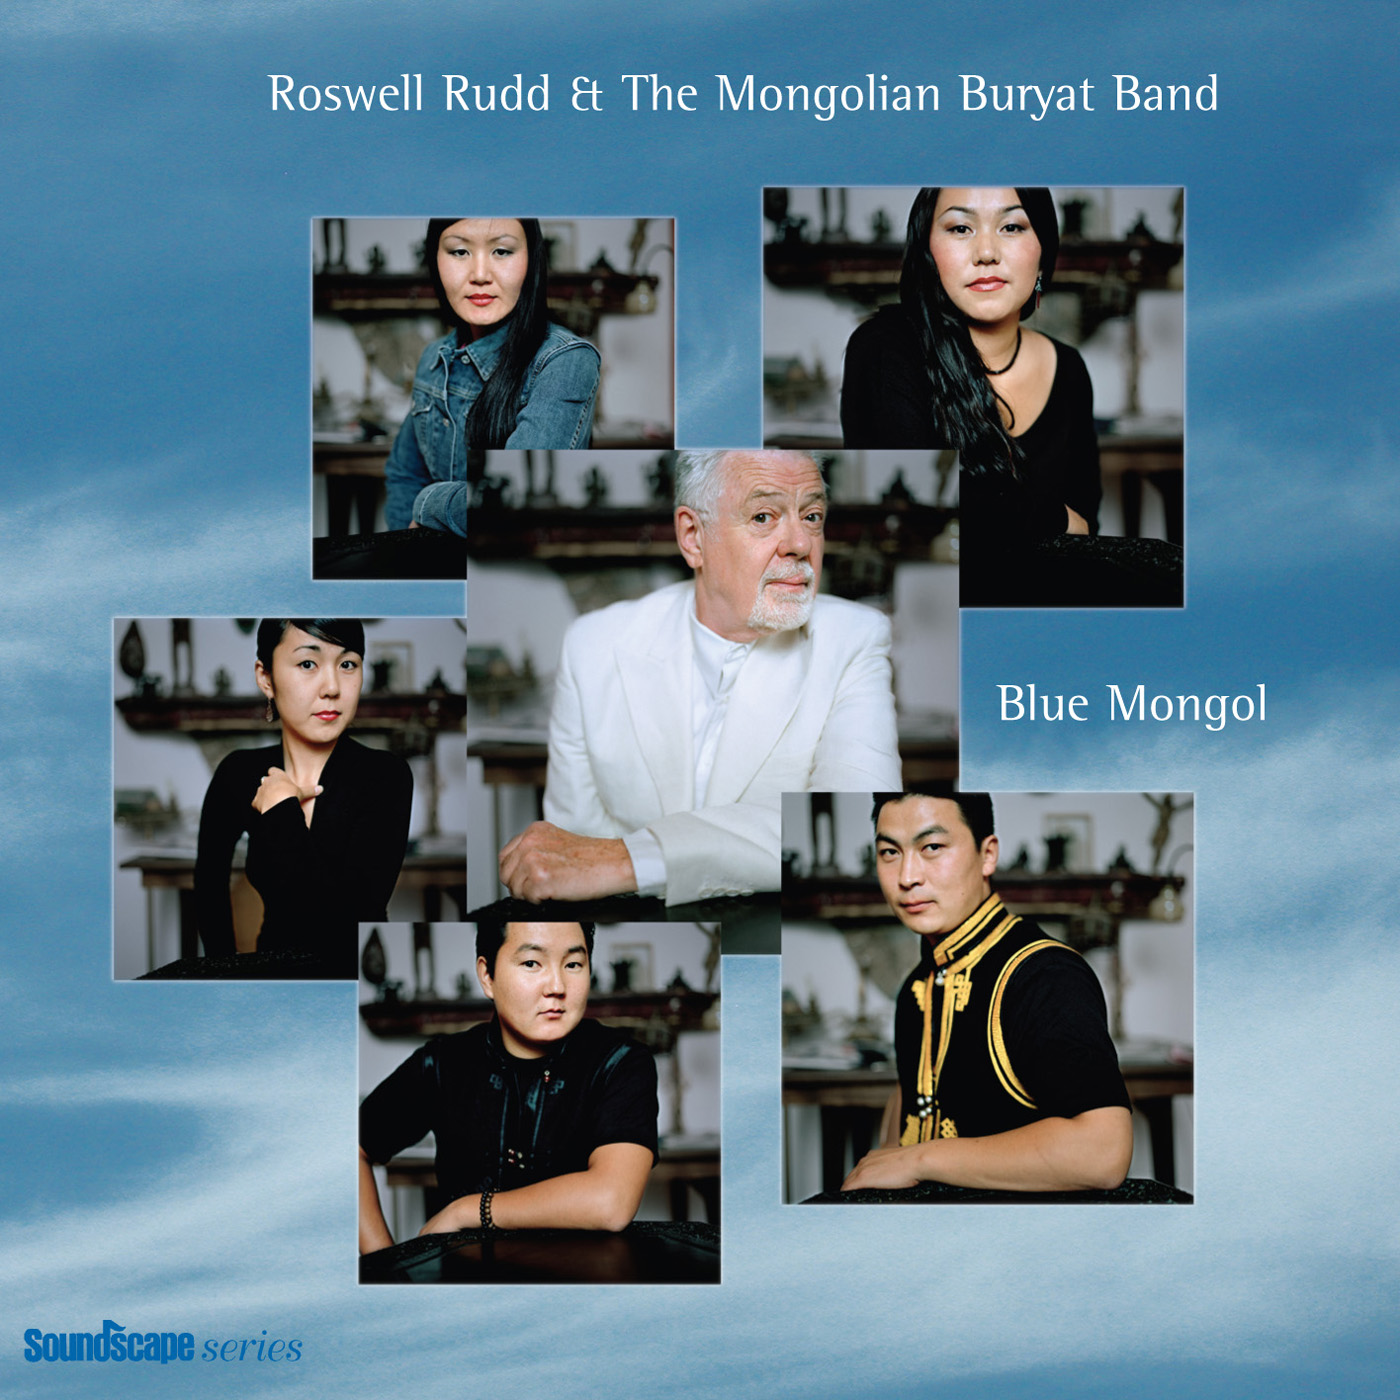 Blue Mongol by Roswell Rudd & the Mongolian Buryat Band cover